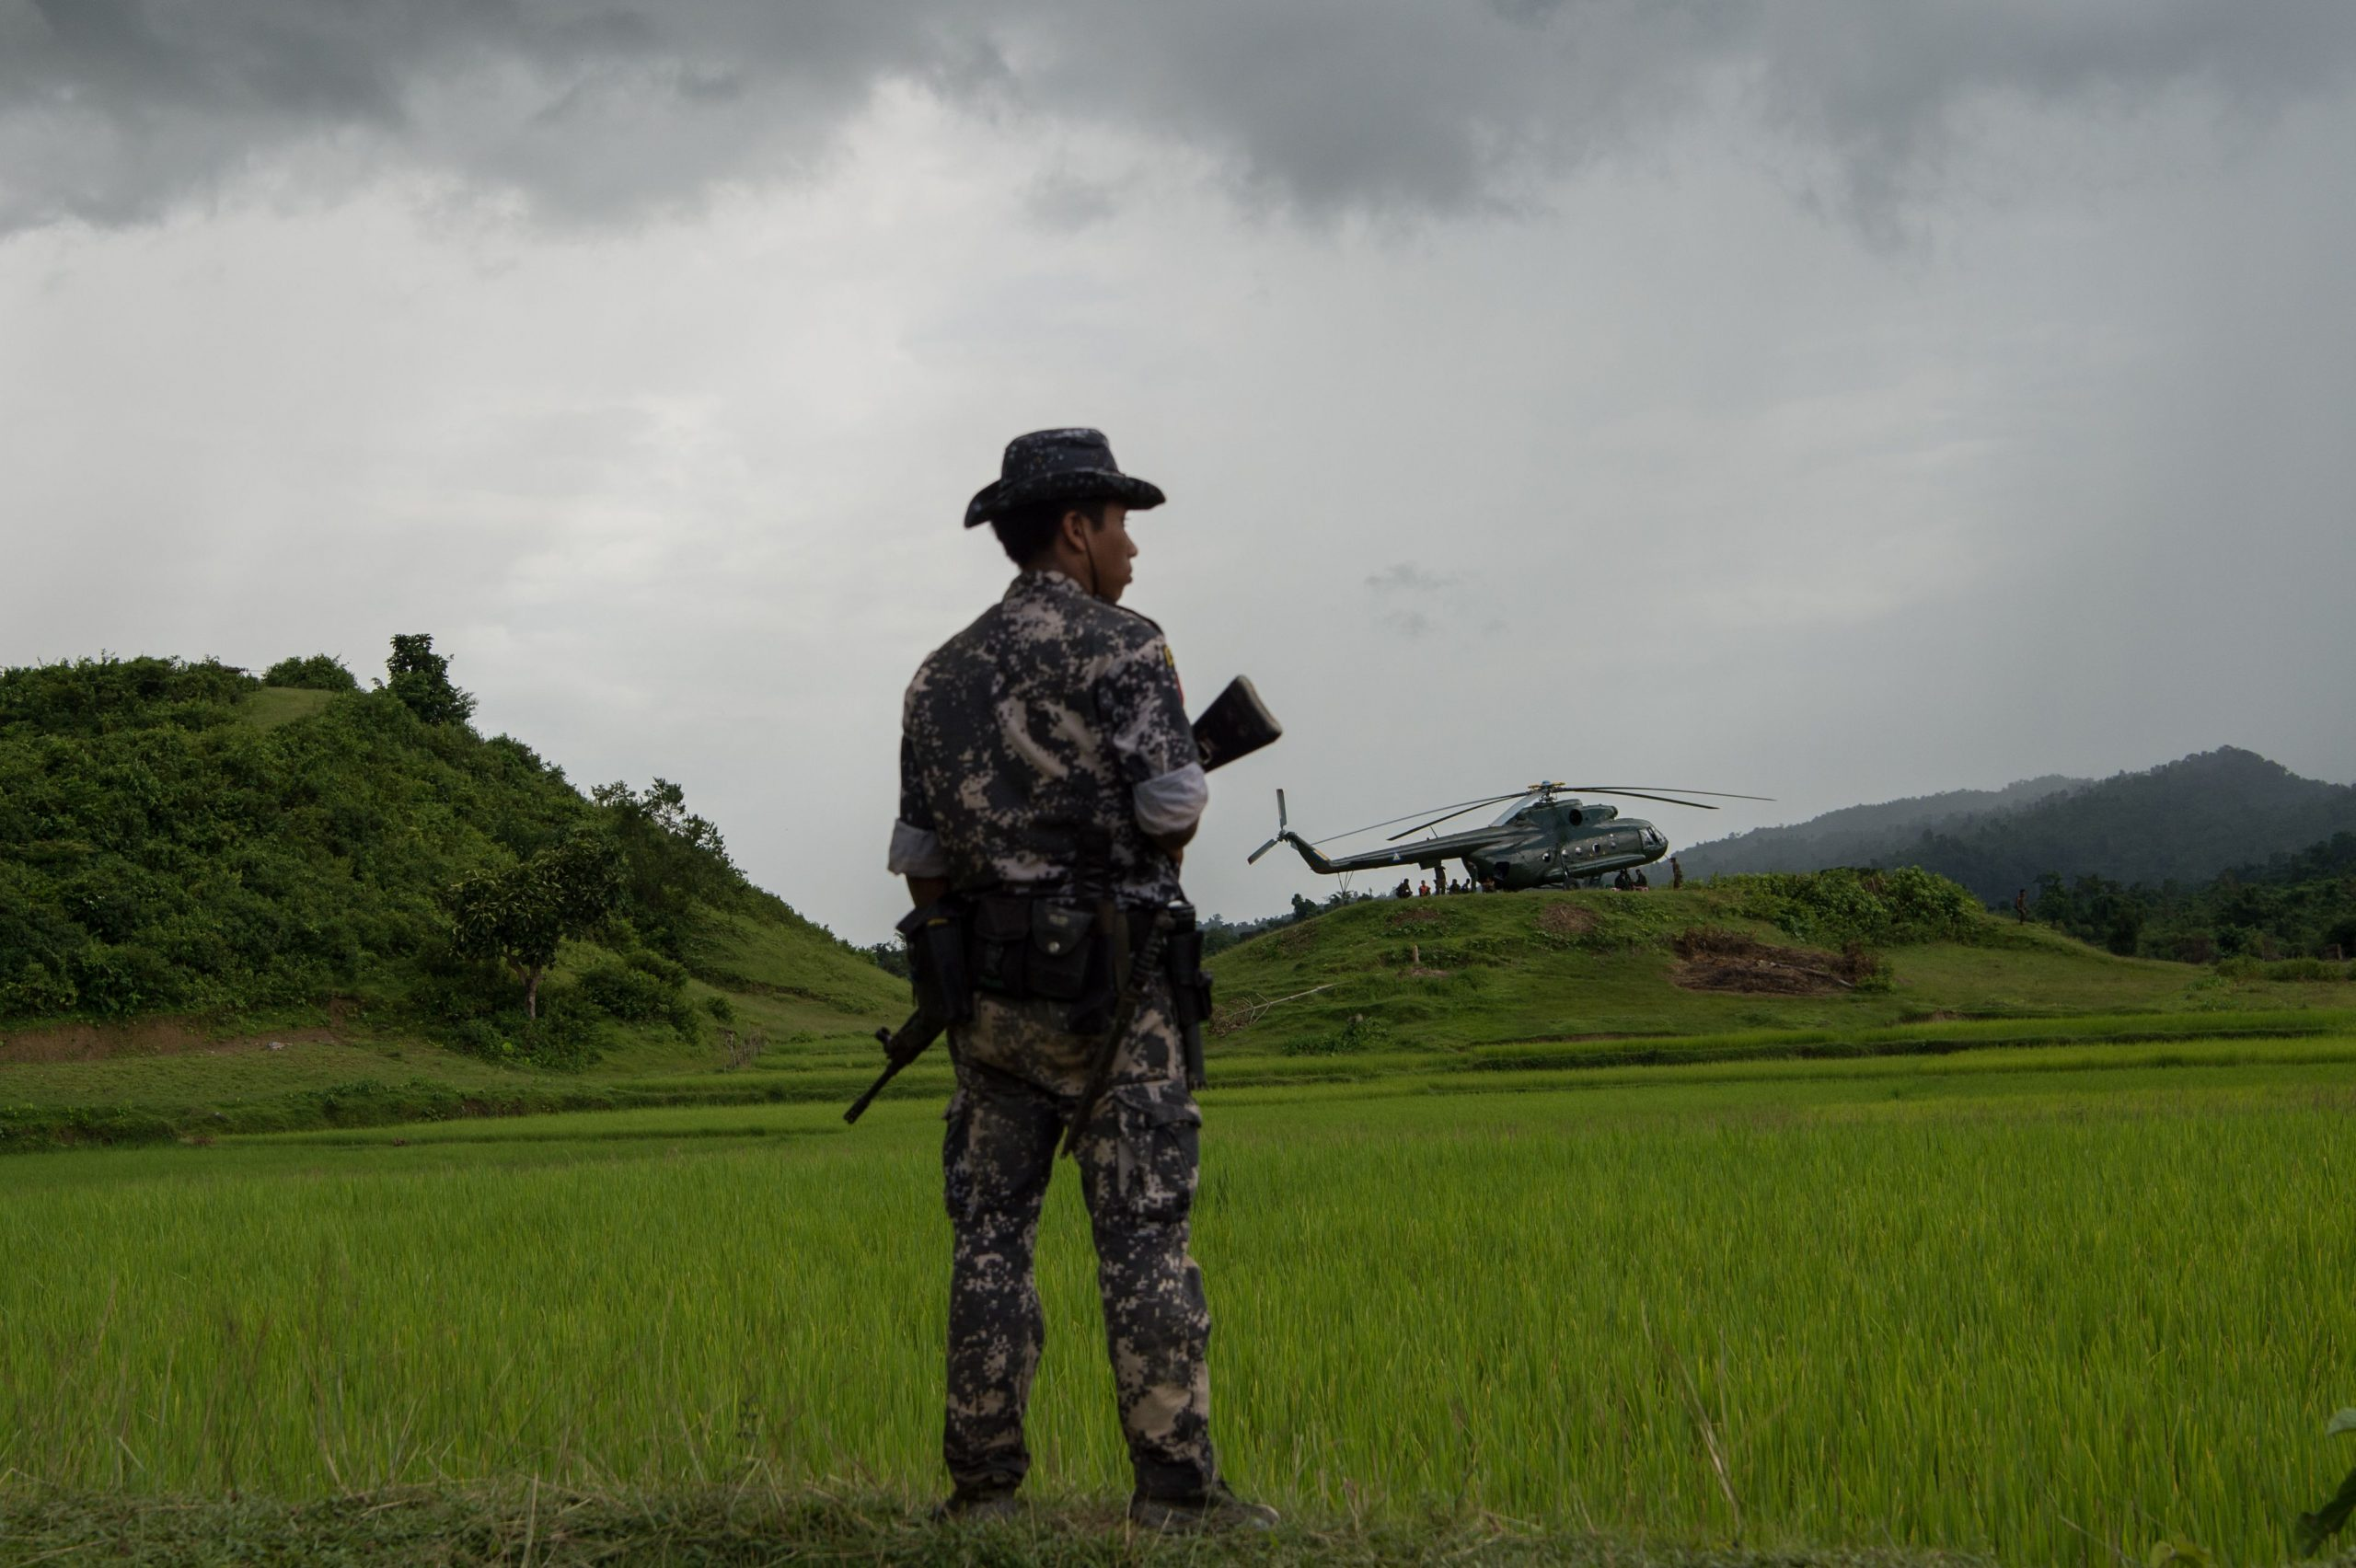 TOPSHOT - In this picture taken on September 27, 2017, a policeman stands guard near a military transport helicopter at Ye Baw Kyaw village, Maungdaw in Myanmar's northern Rakhine state. Rohingya militants on September 27 denied the Myanmar army's allegations that they had massacred scores of Hindu villagers, whose bodies soldiers displayed to the press after exhuming them from mass graves in northern Rakhine state. Major clashes between the army and the Muslim insurgents erupted last month, triggering a dire refugee crisis with nearly half a million Rohingya fleeing across the border to Bangladesh. / AFP PHOTO / STR        (Photo credit should read STR/AFP/Getty Images)